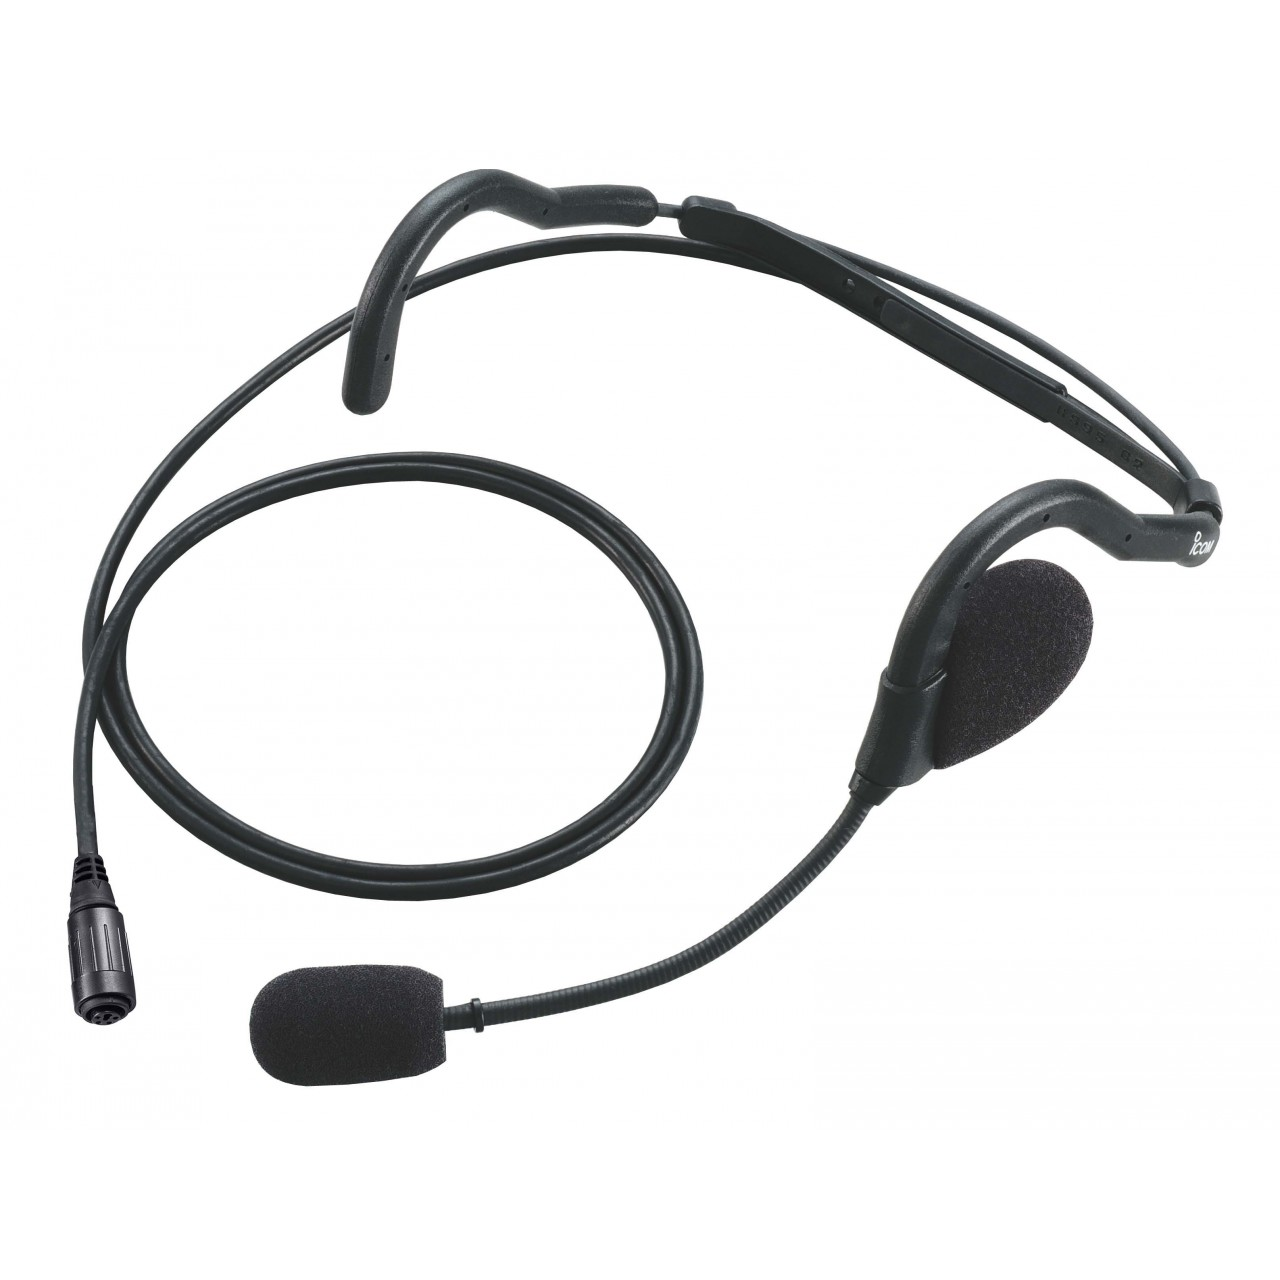 HS-M73 Headsets and earphones - ICOM